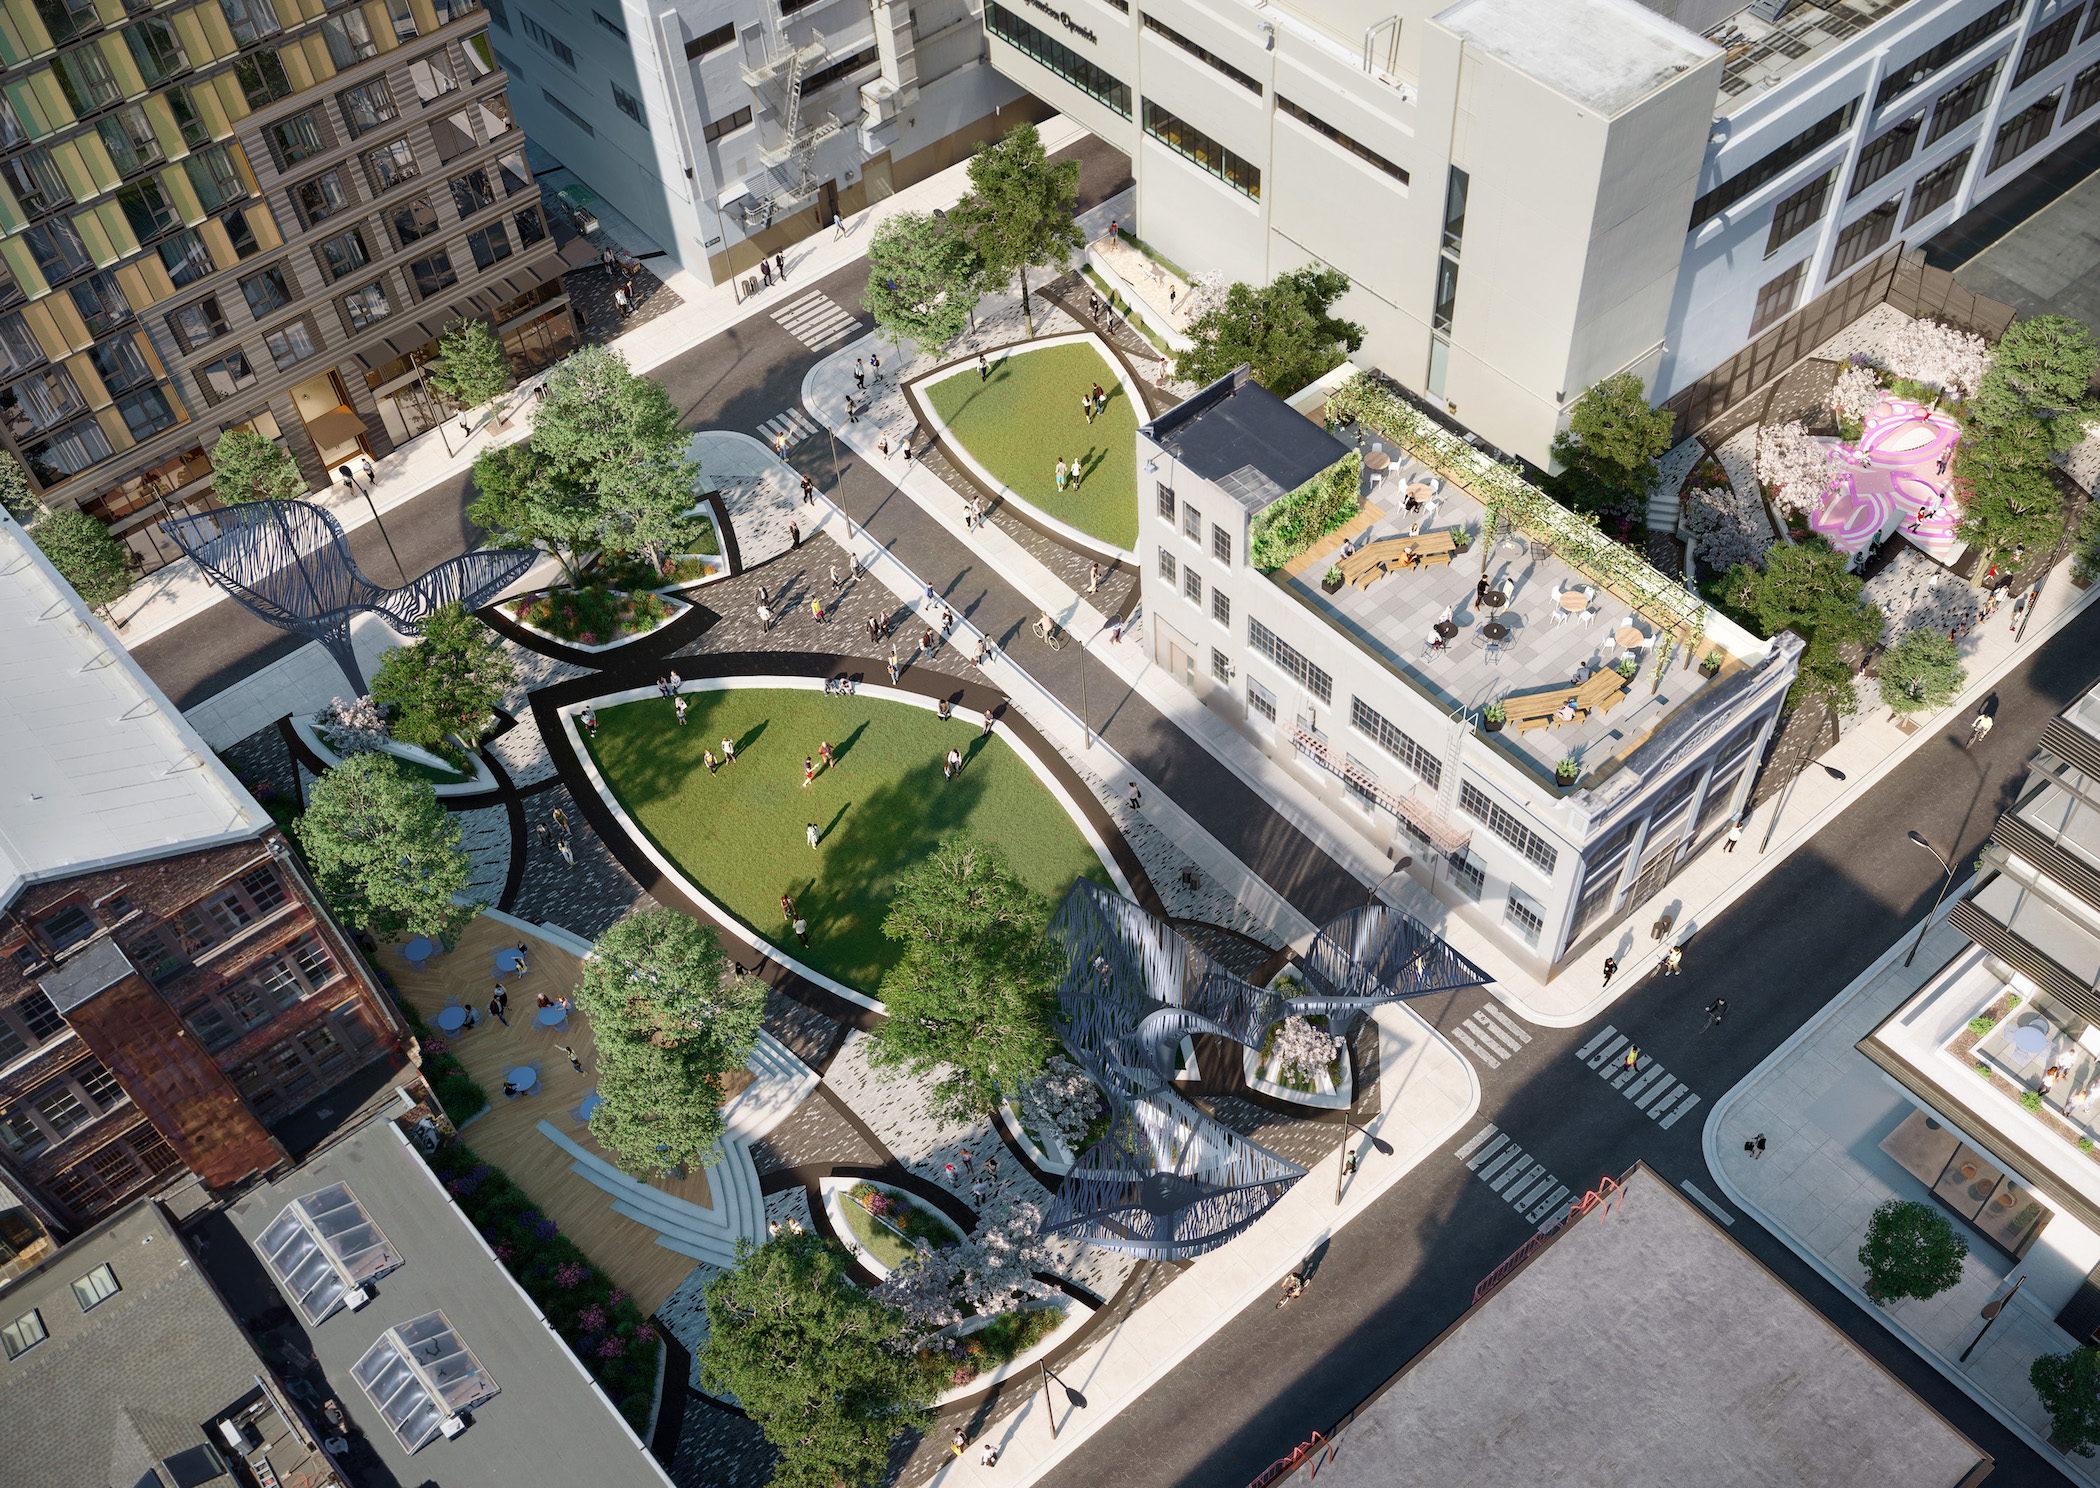 The Mary Court public space, image courtesy Brookfield Properties